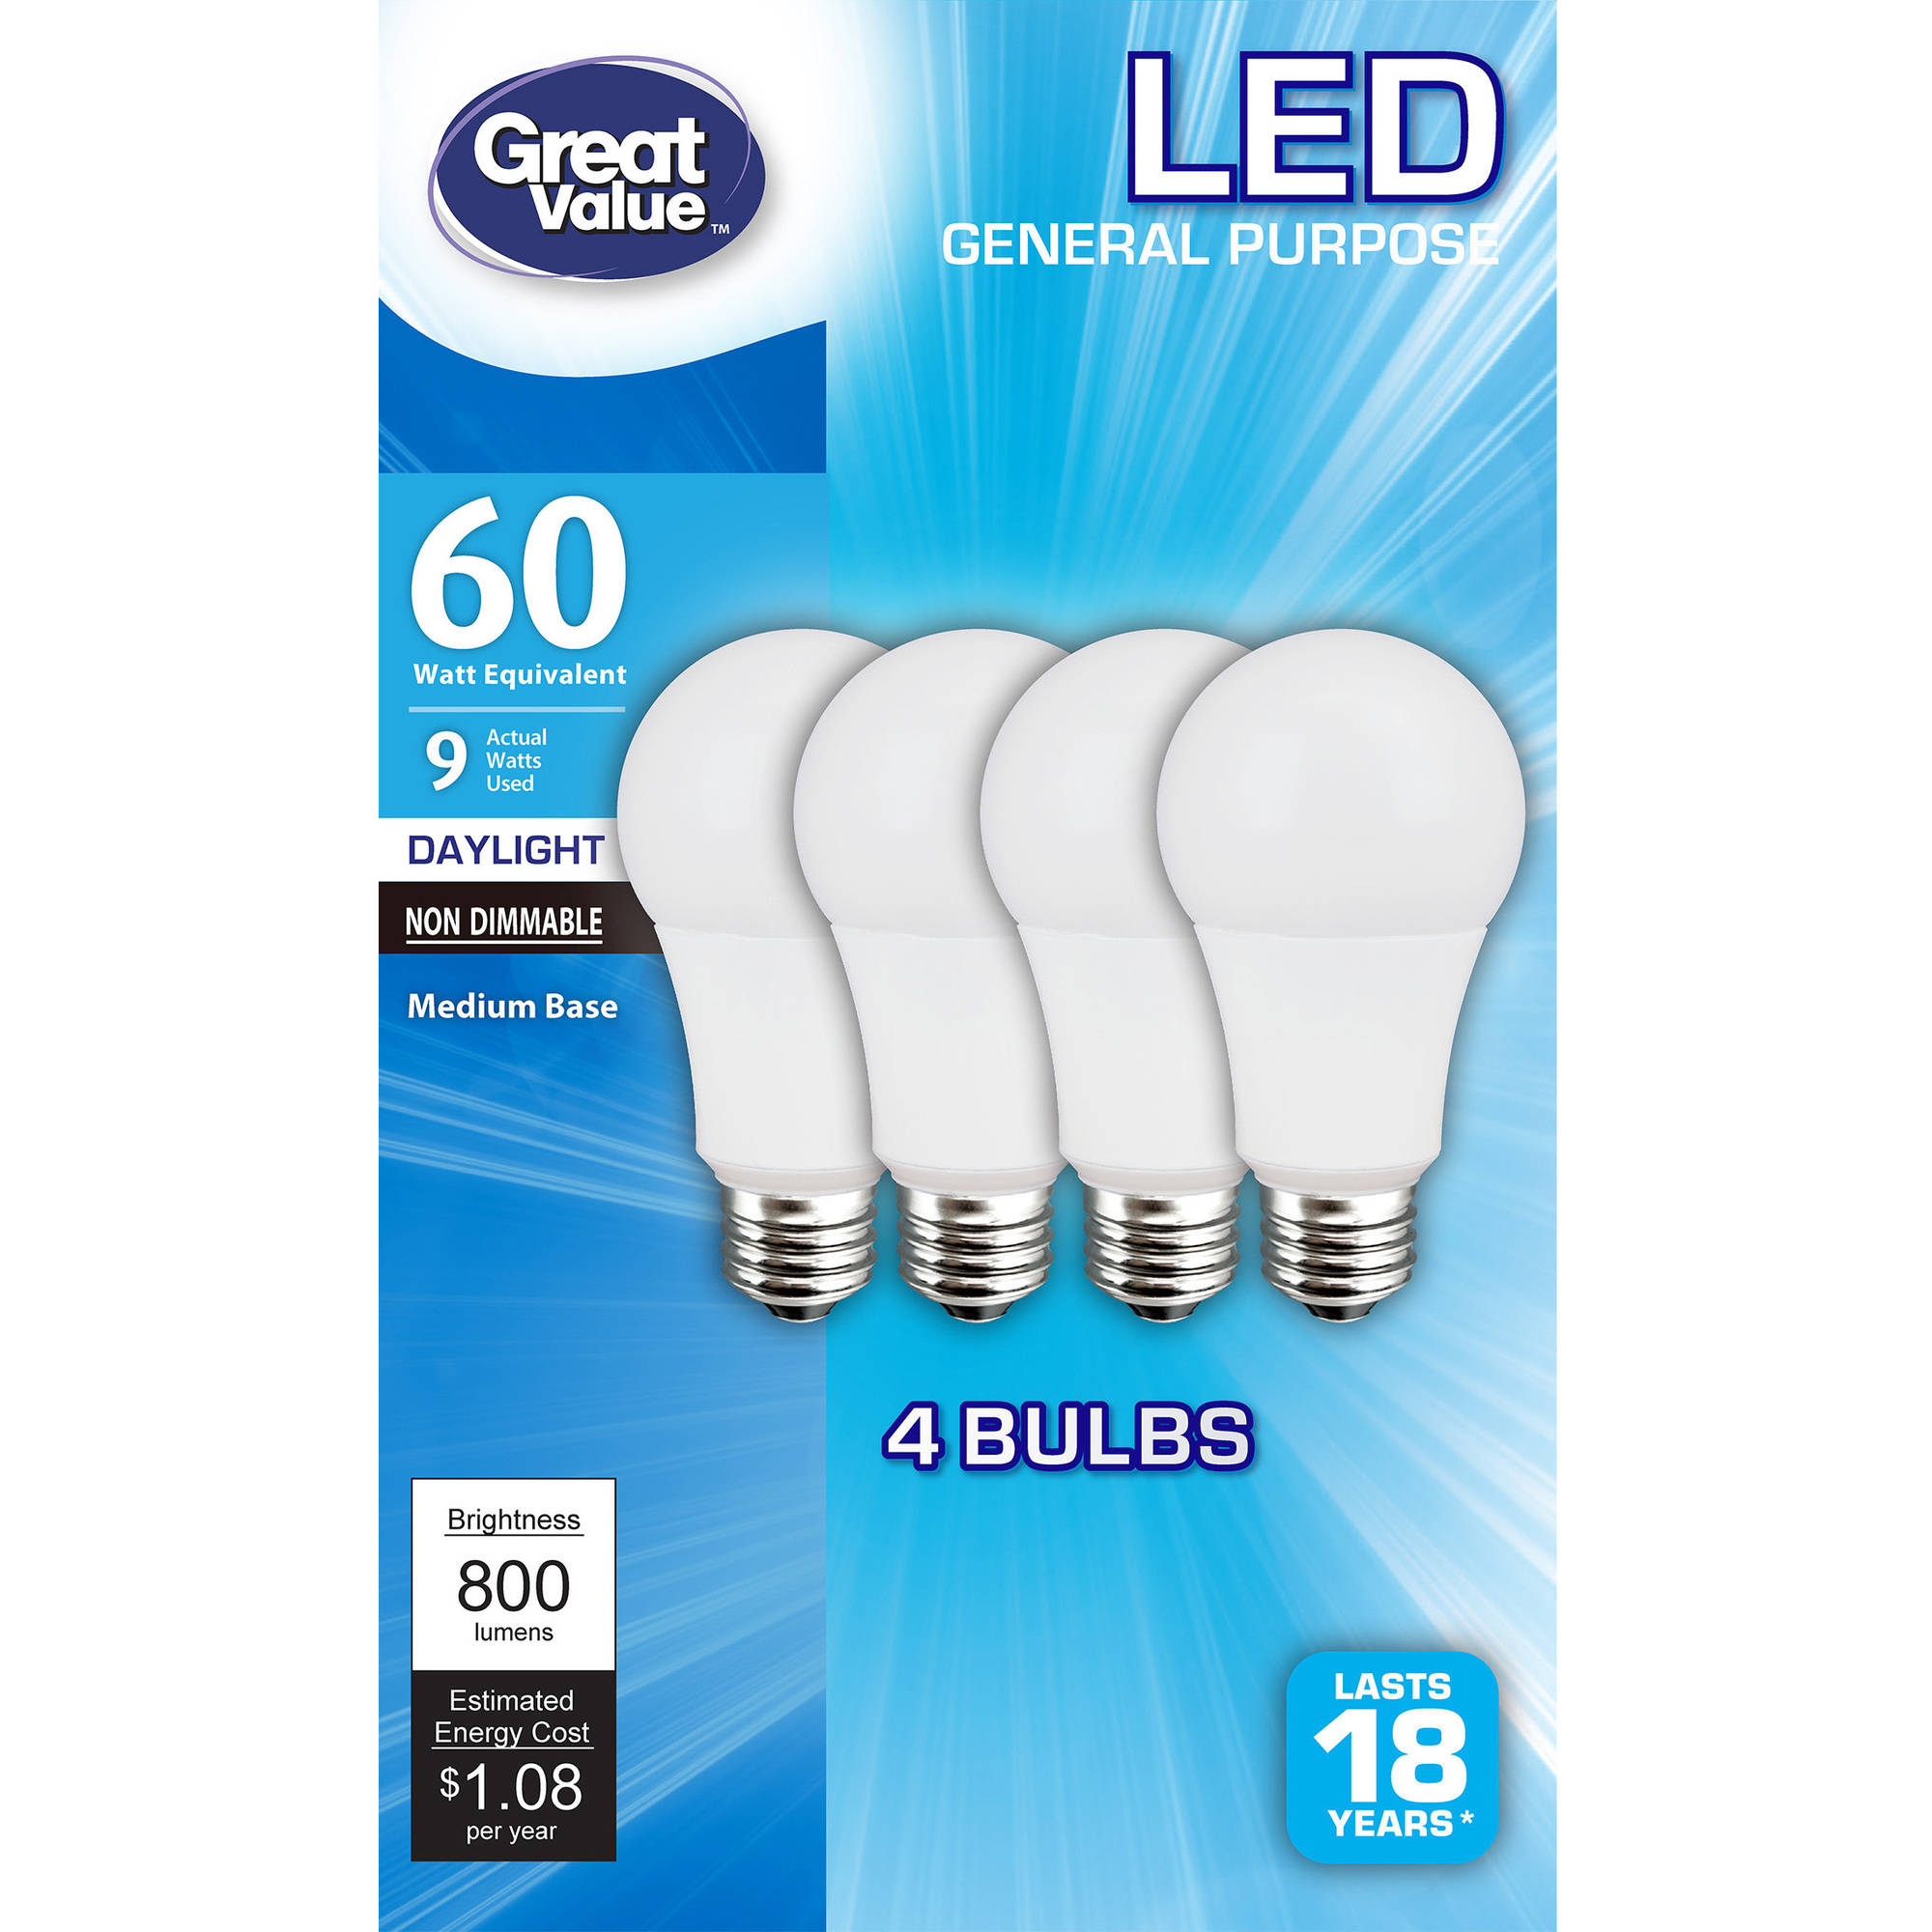 Great Value LED Light Bulbs 9W (60W Equivalent), Daylight, 4-Pack